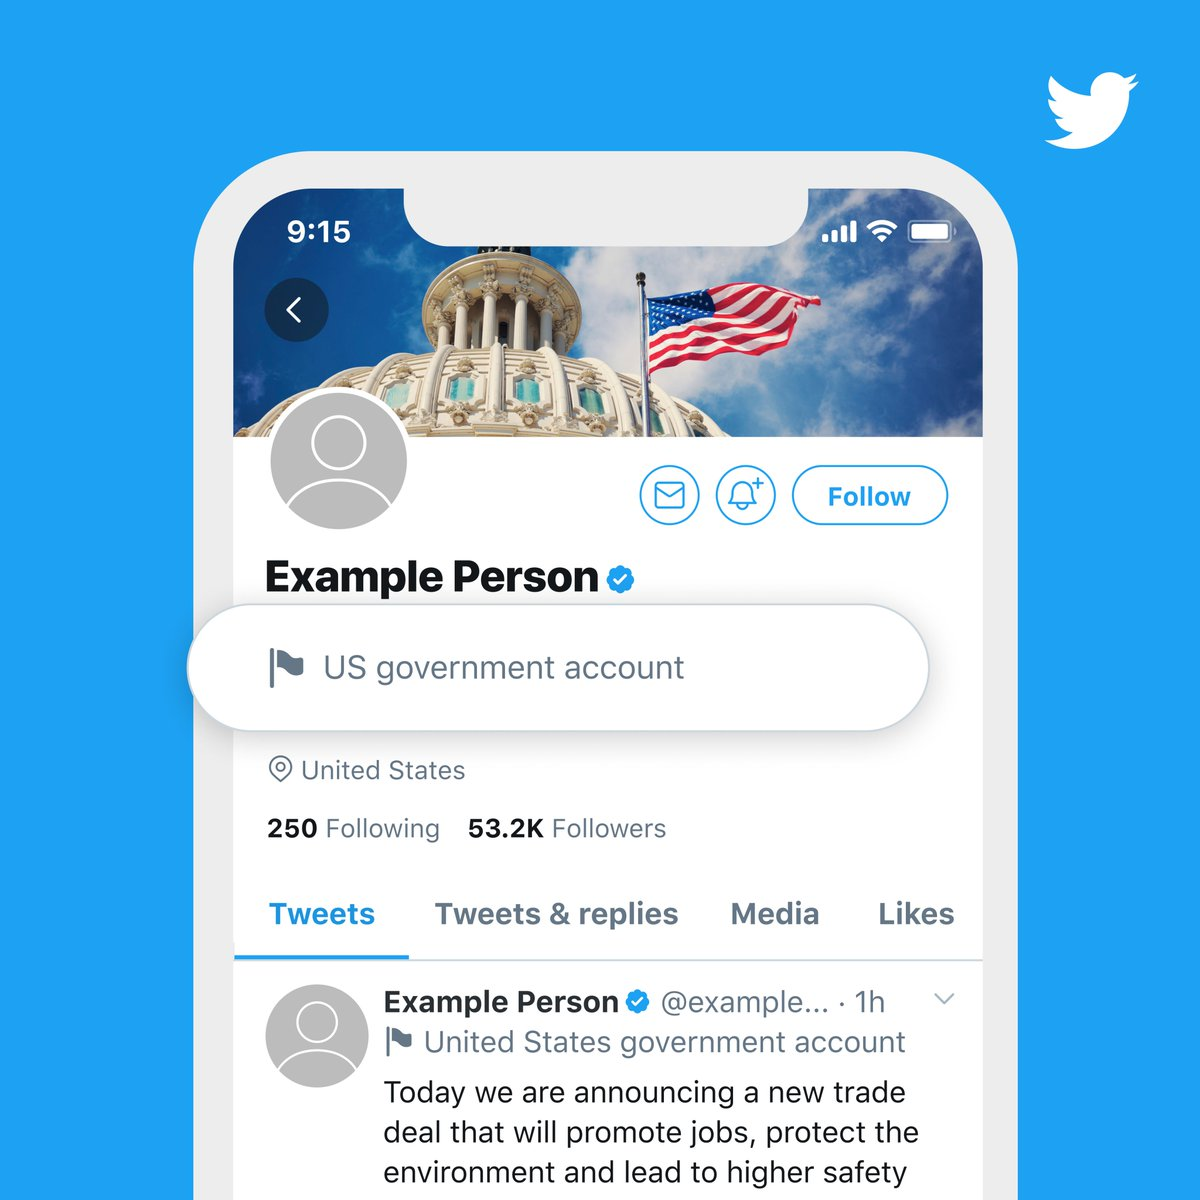 When it comes to conversations with government and state-affiliated media accounts on Twitter, we're helping to make the experience more transparent. Well now use two distinct profile labels for these types of accounts, so you can easily identify them and their Tweets. (1/2)